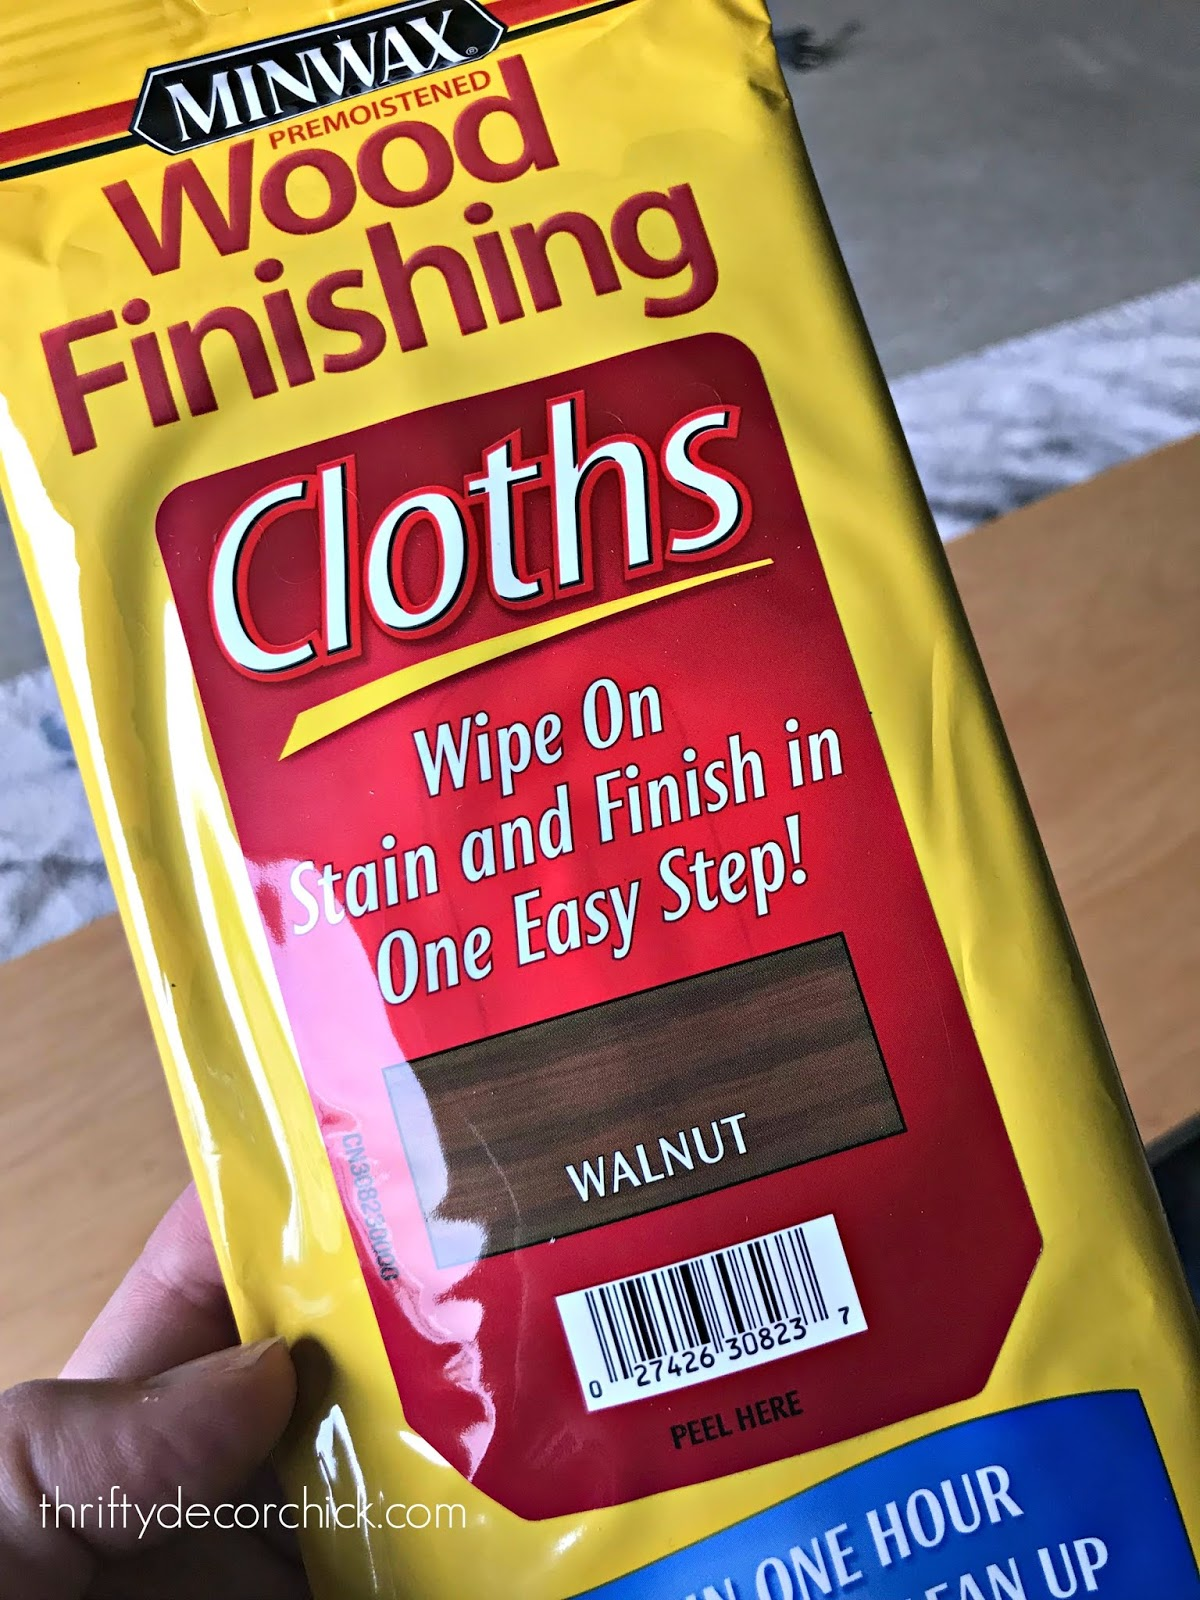 Staining wipes in walnut